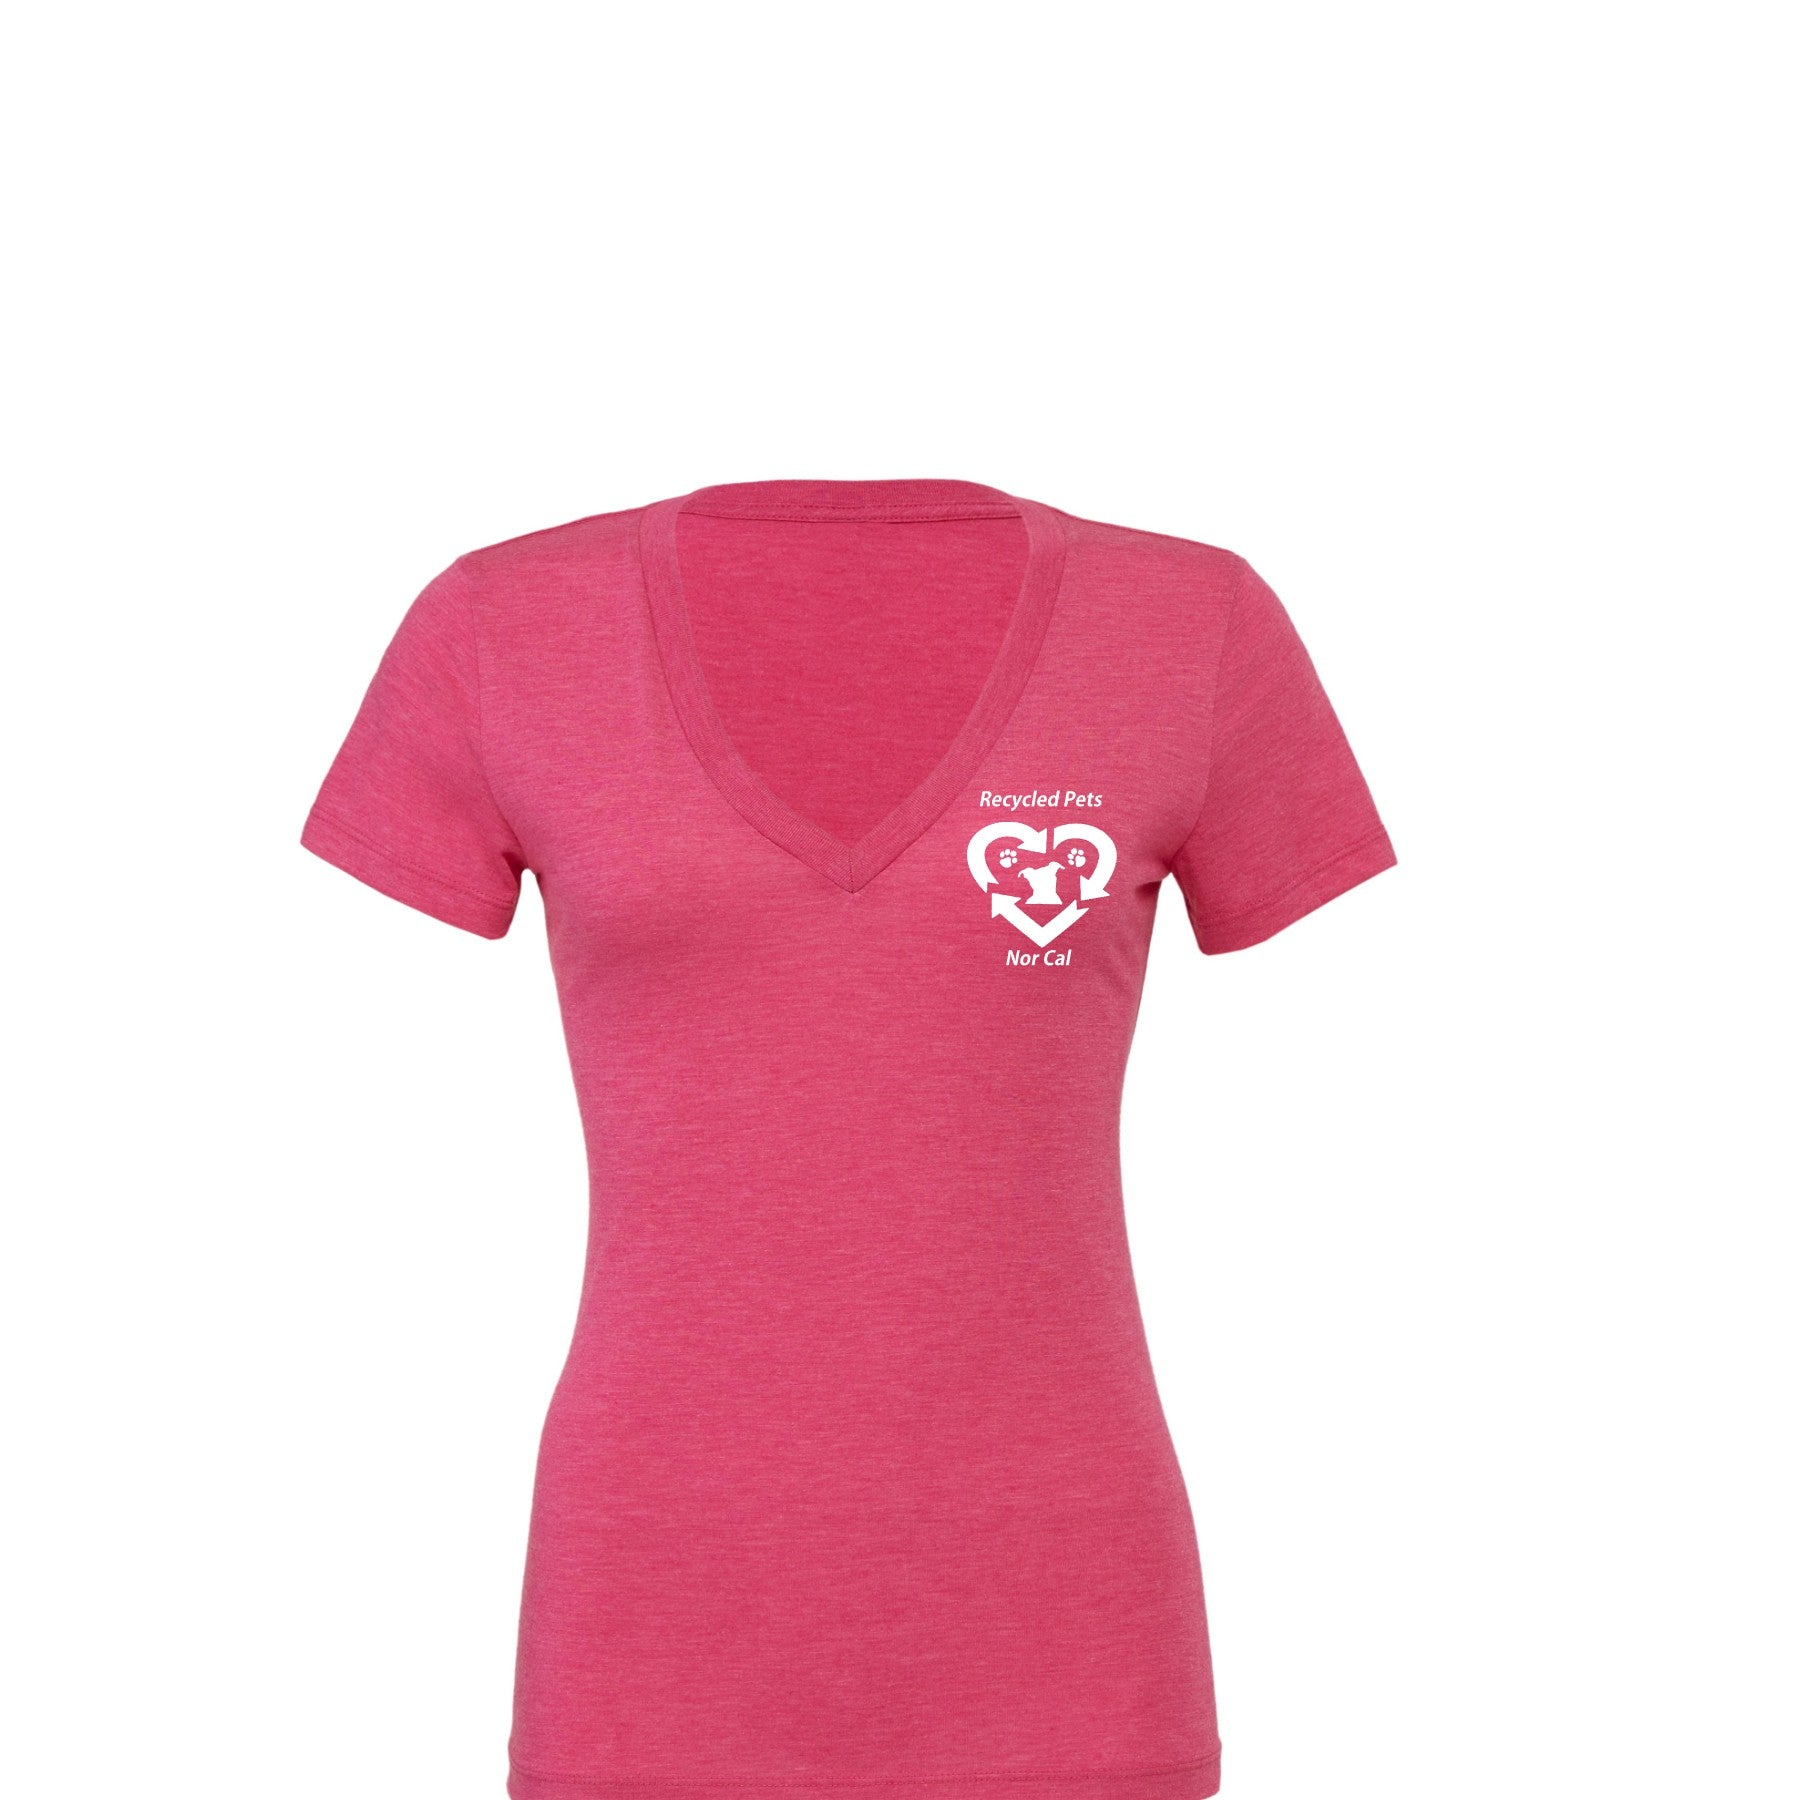 Recycled Pets Women's Tri-Blend Deep V-Neck T-Shirt - Ruff Life Rescue Wear